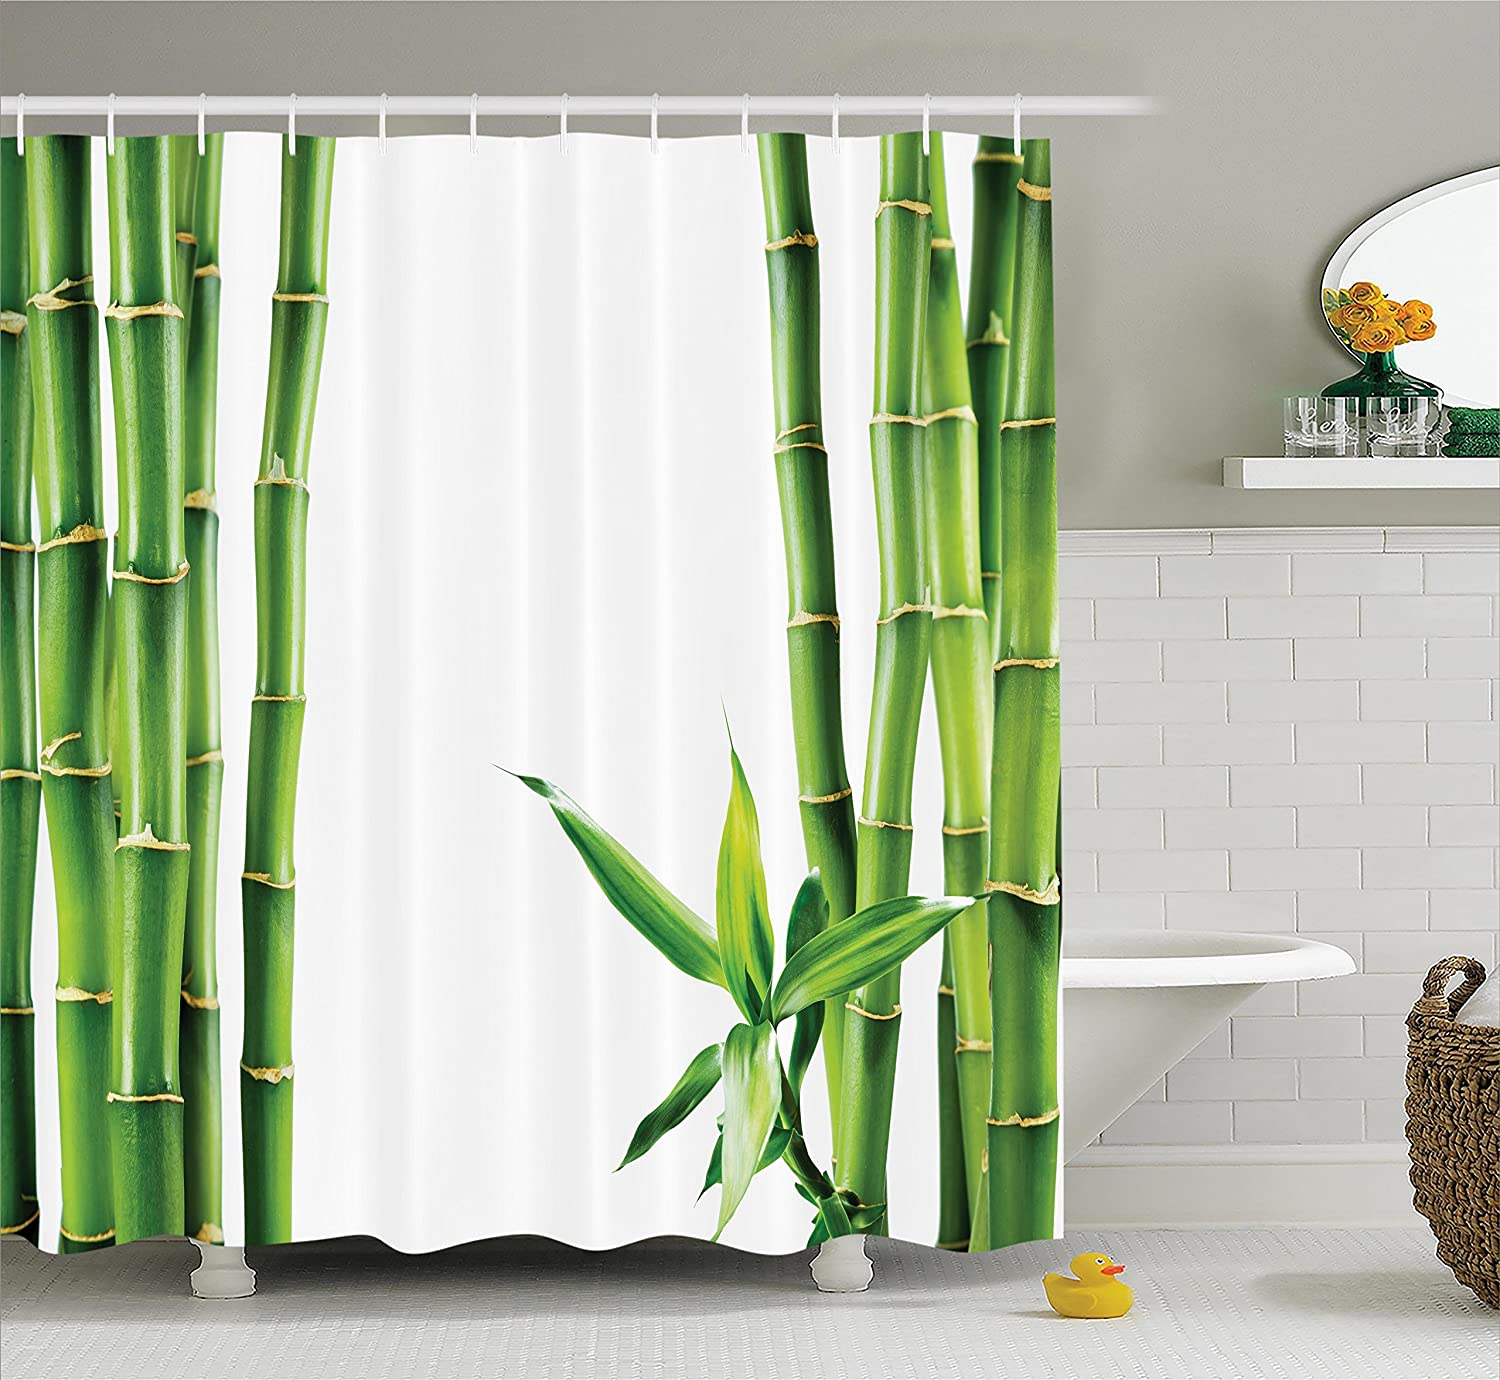 Water Machine Washable and Mildew resistant Shower Curtain Berry Green Red Yellow Navy Brown Four Seasons Shower Hooks are Included Ambesonne sc/_3389 Soap